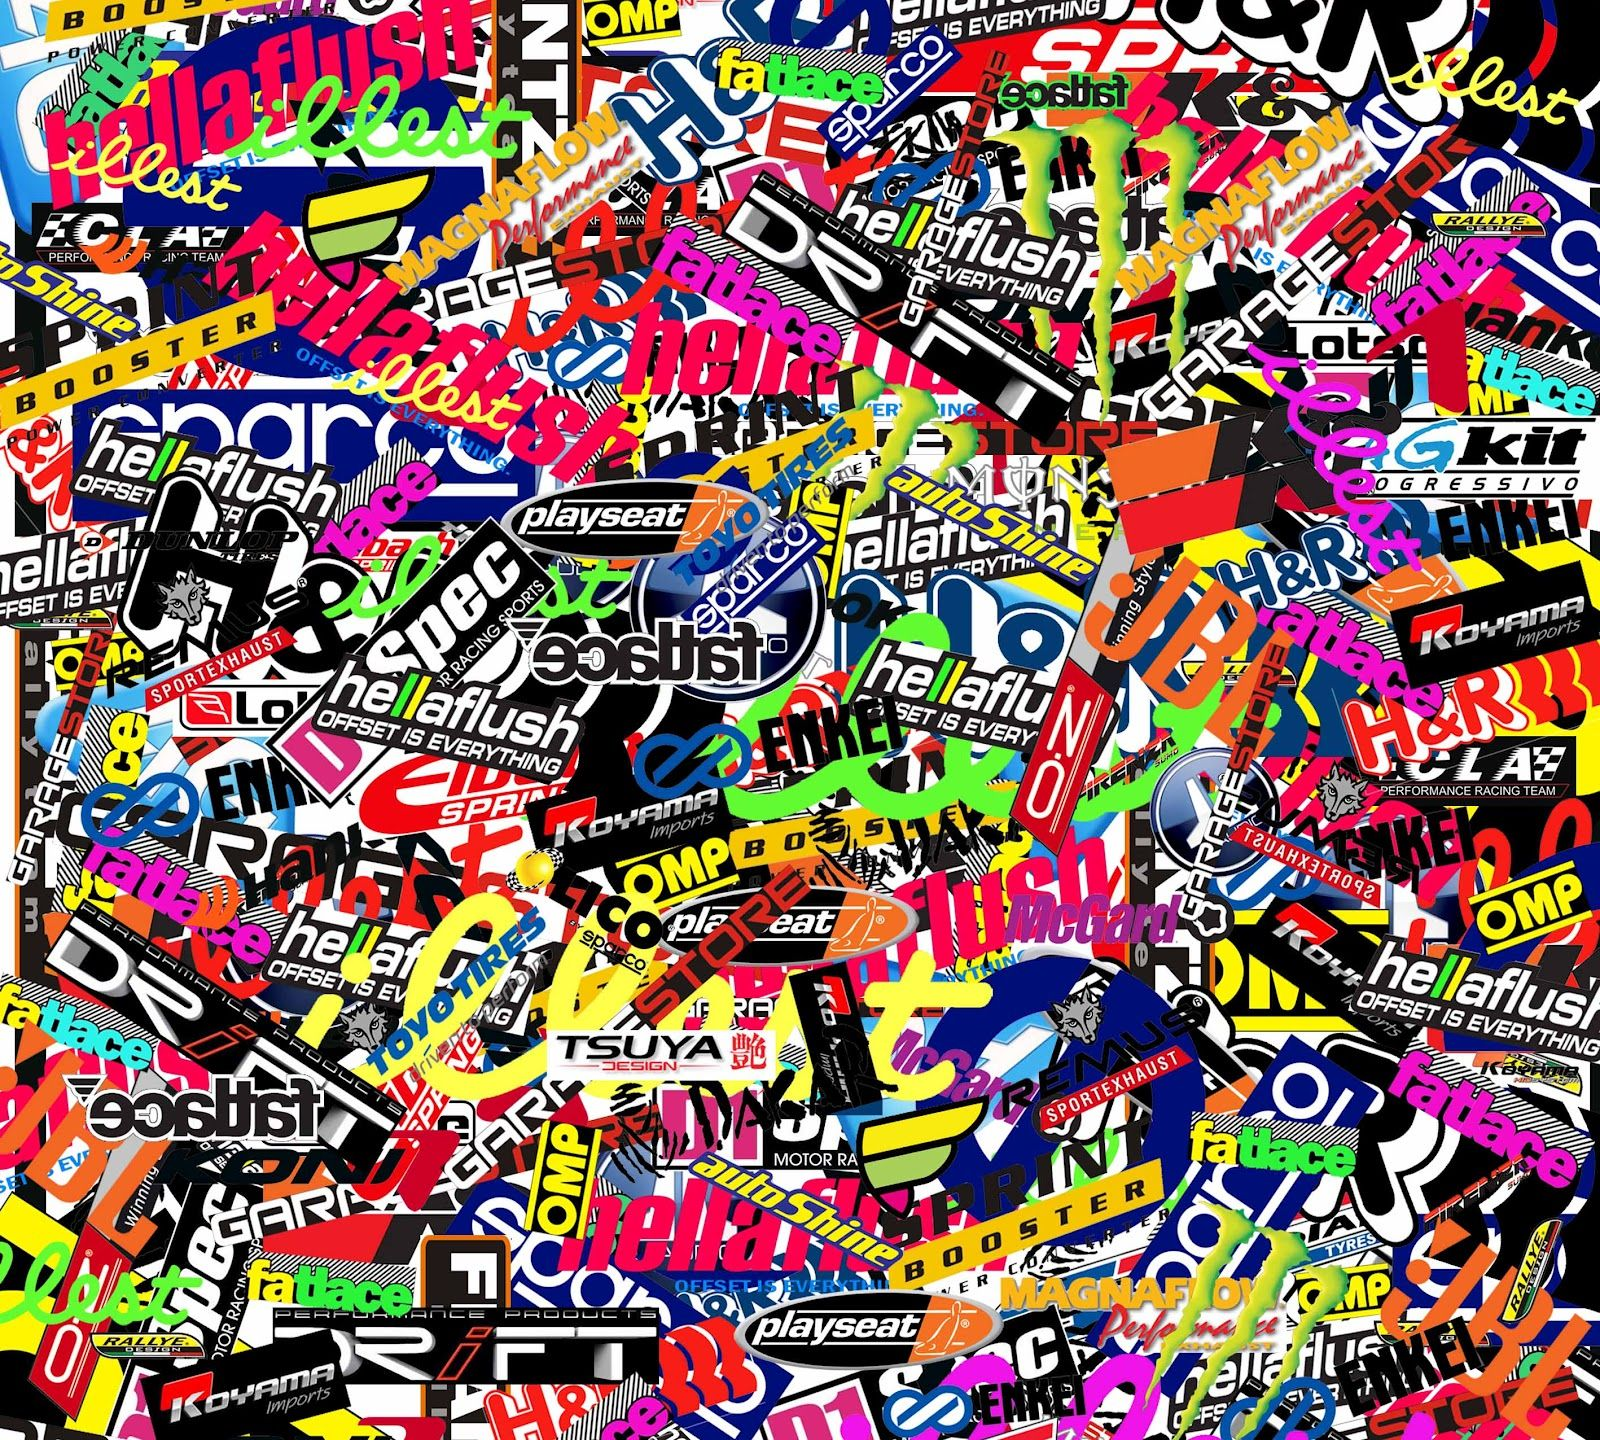 Hypebeast Collage Wallpapers   Top Hypebeast Collage 1600x1440